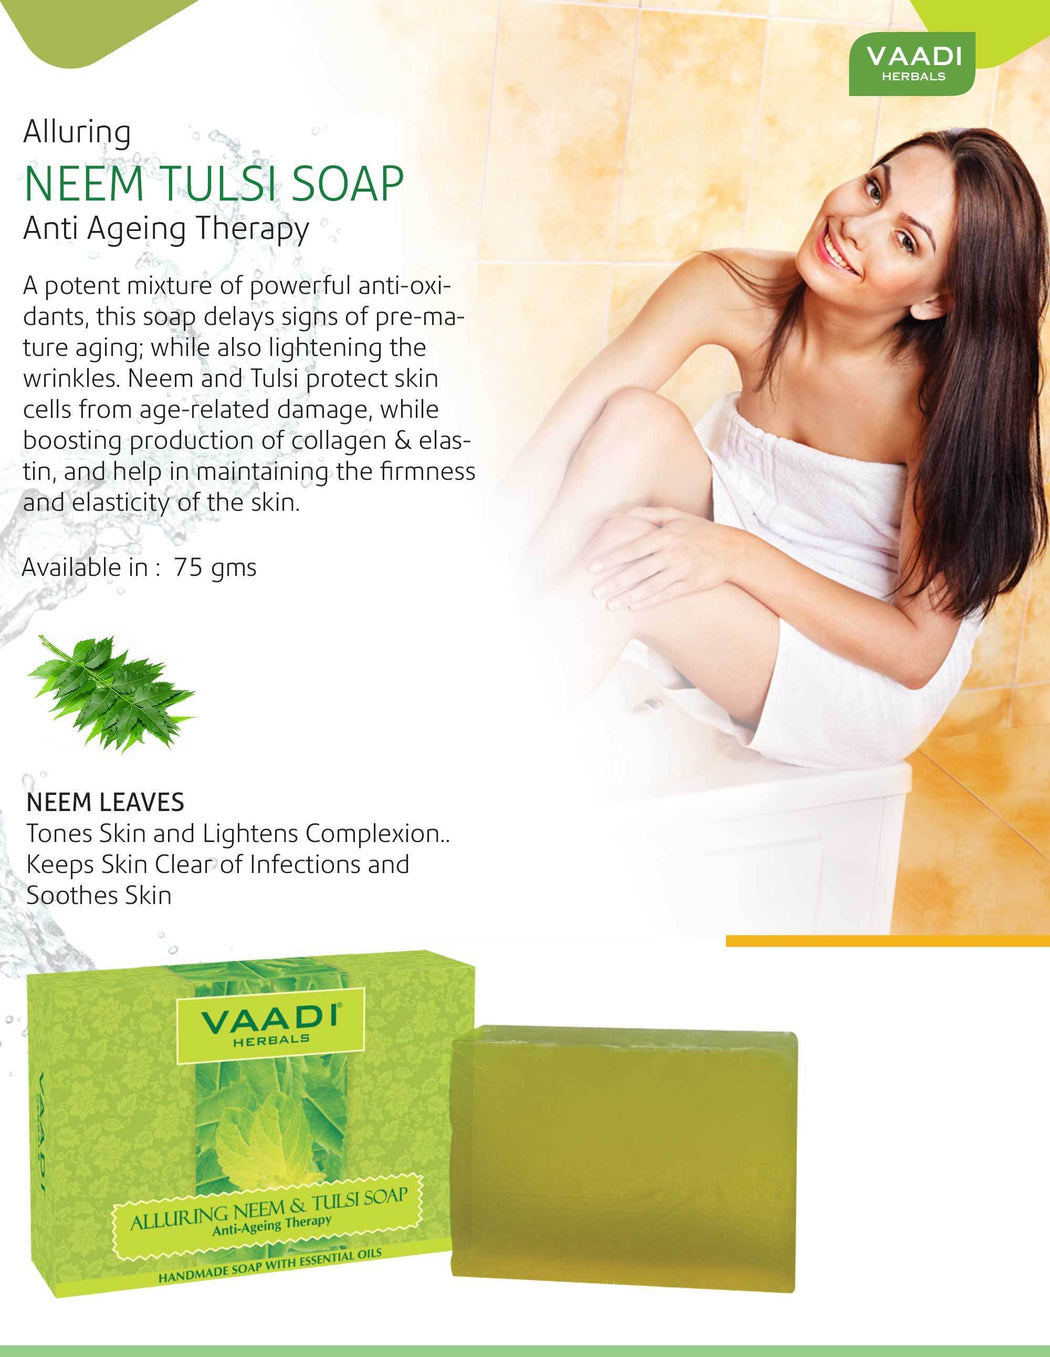 Organic Alluring Neem Tulsi Soap with Aloe Vera, Vitamin E & Tea Tree Oil - Prevents Ageing - Protects Skin (12 x 75 gms / 2.7 oz)